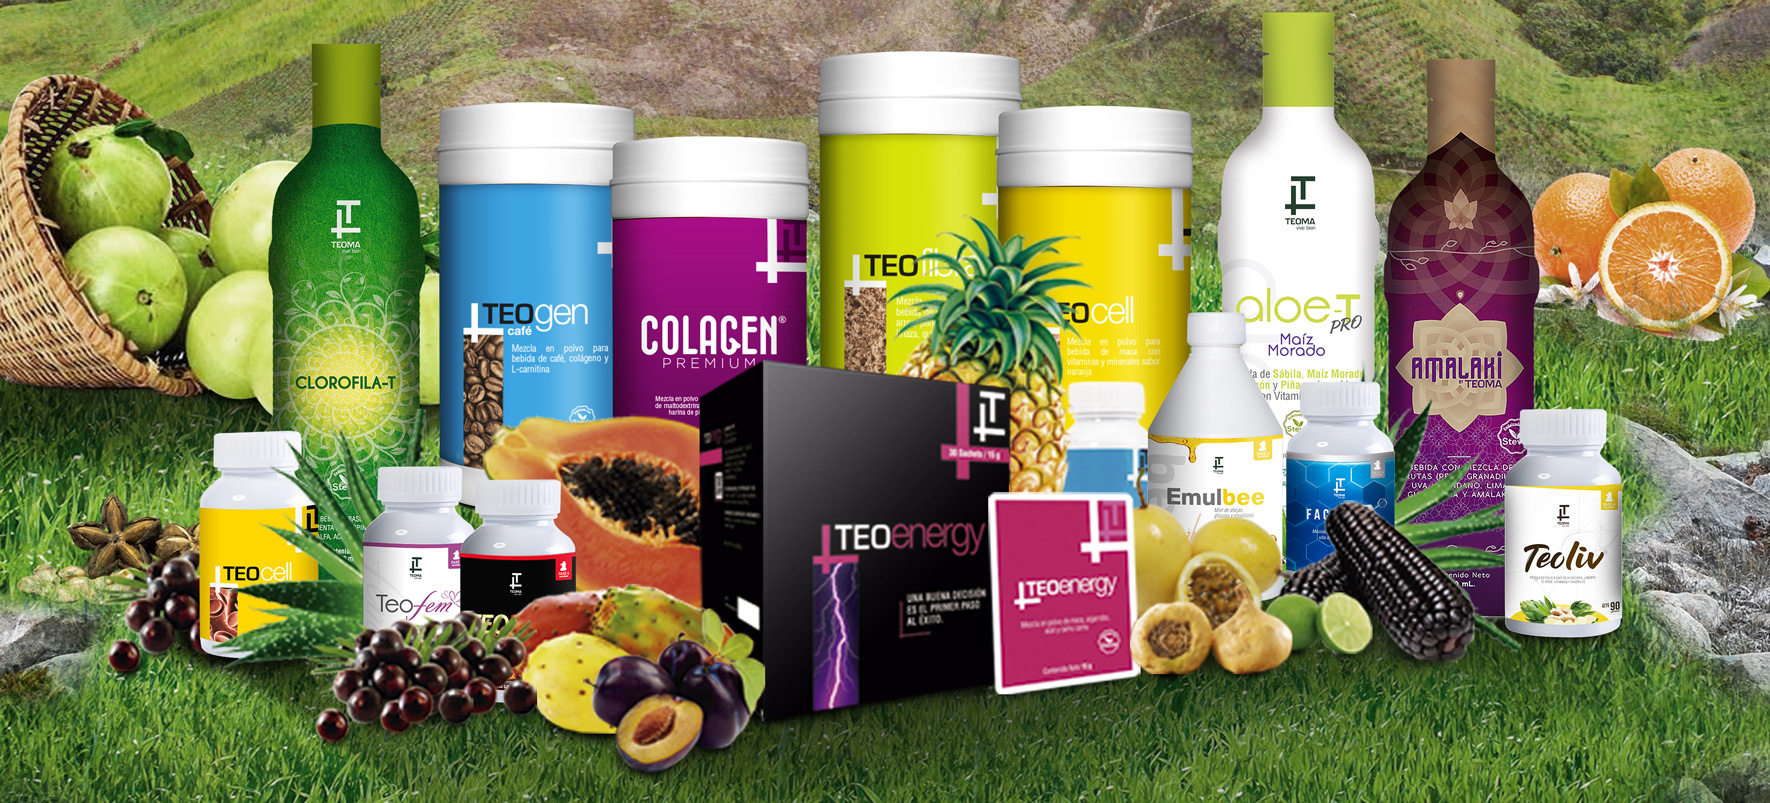 PRODUCTOS TEOMA